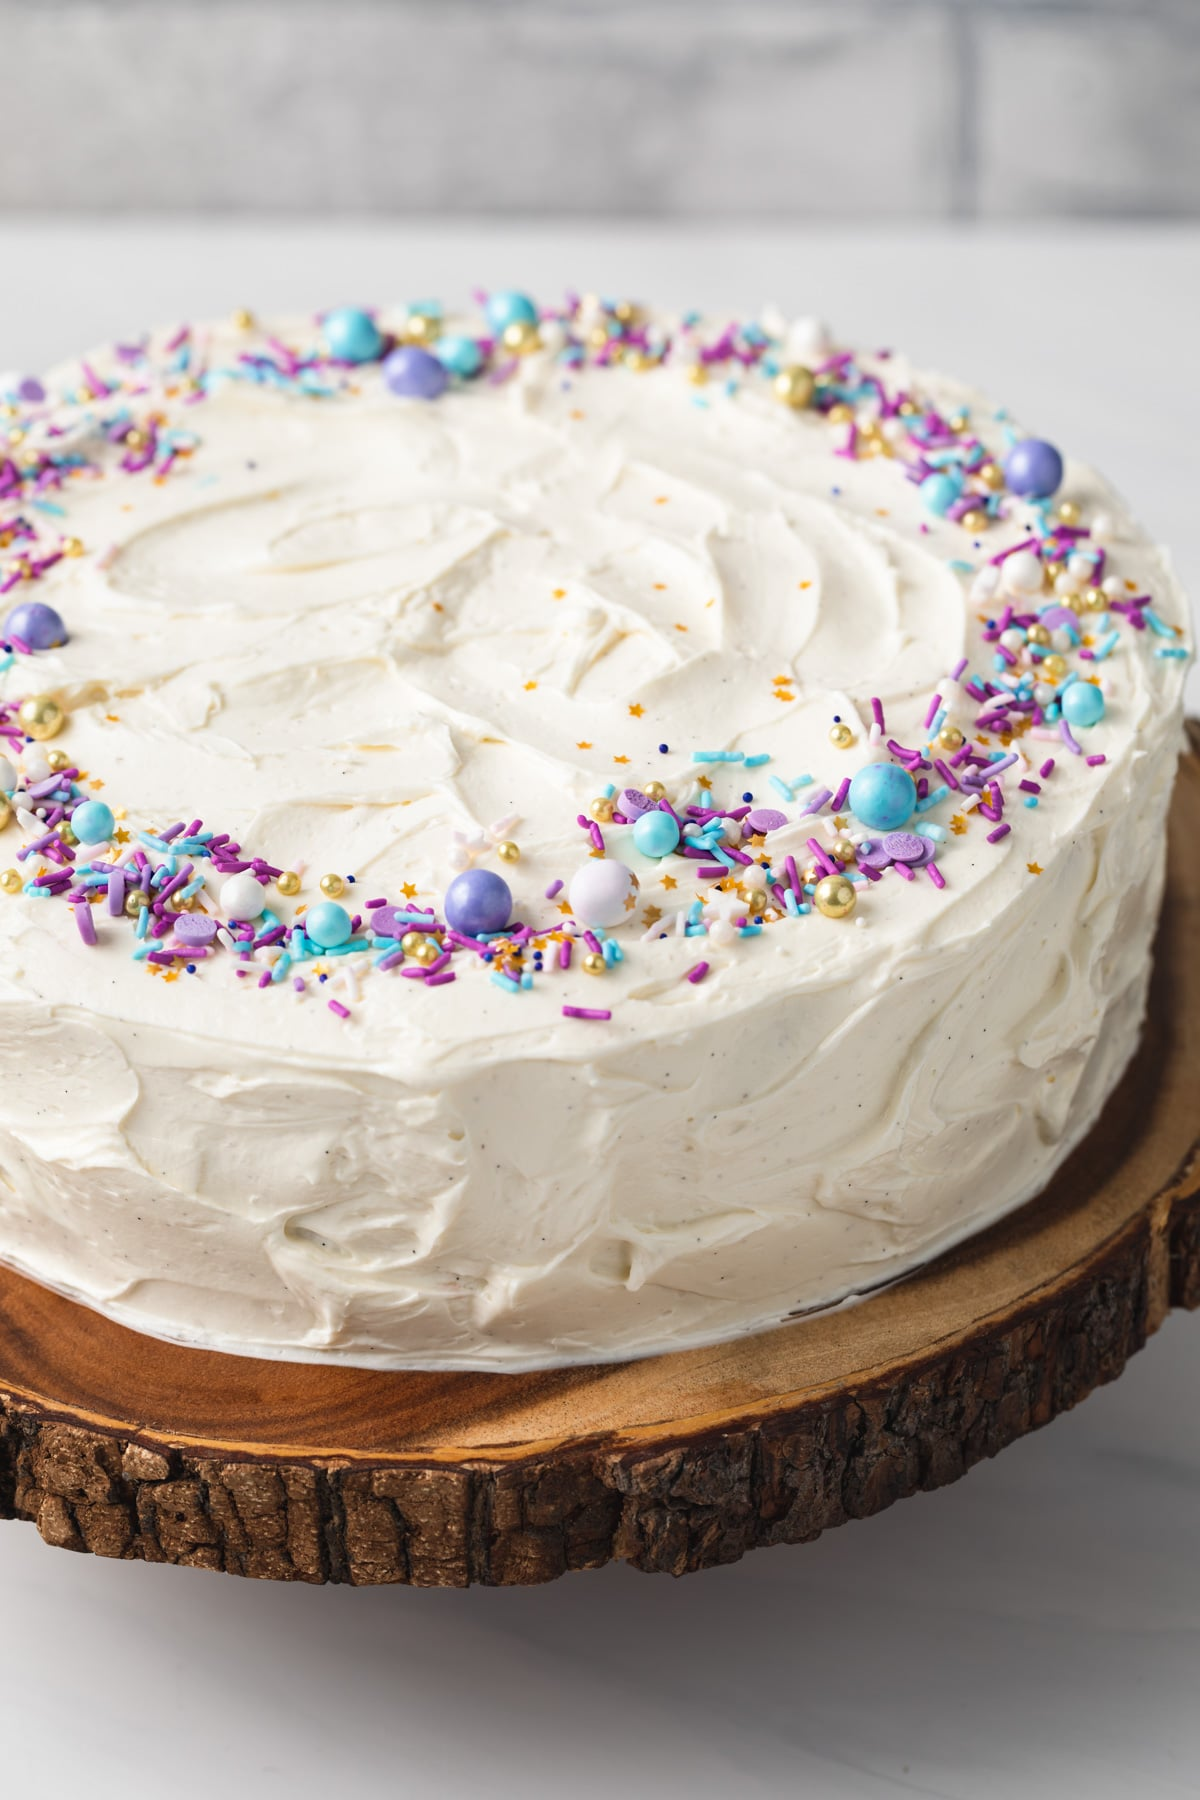 angled view of vanilla cake with colorful sprinkles on a wooden cake stand